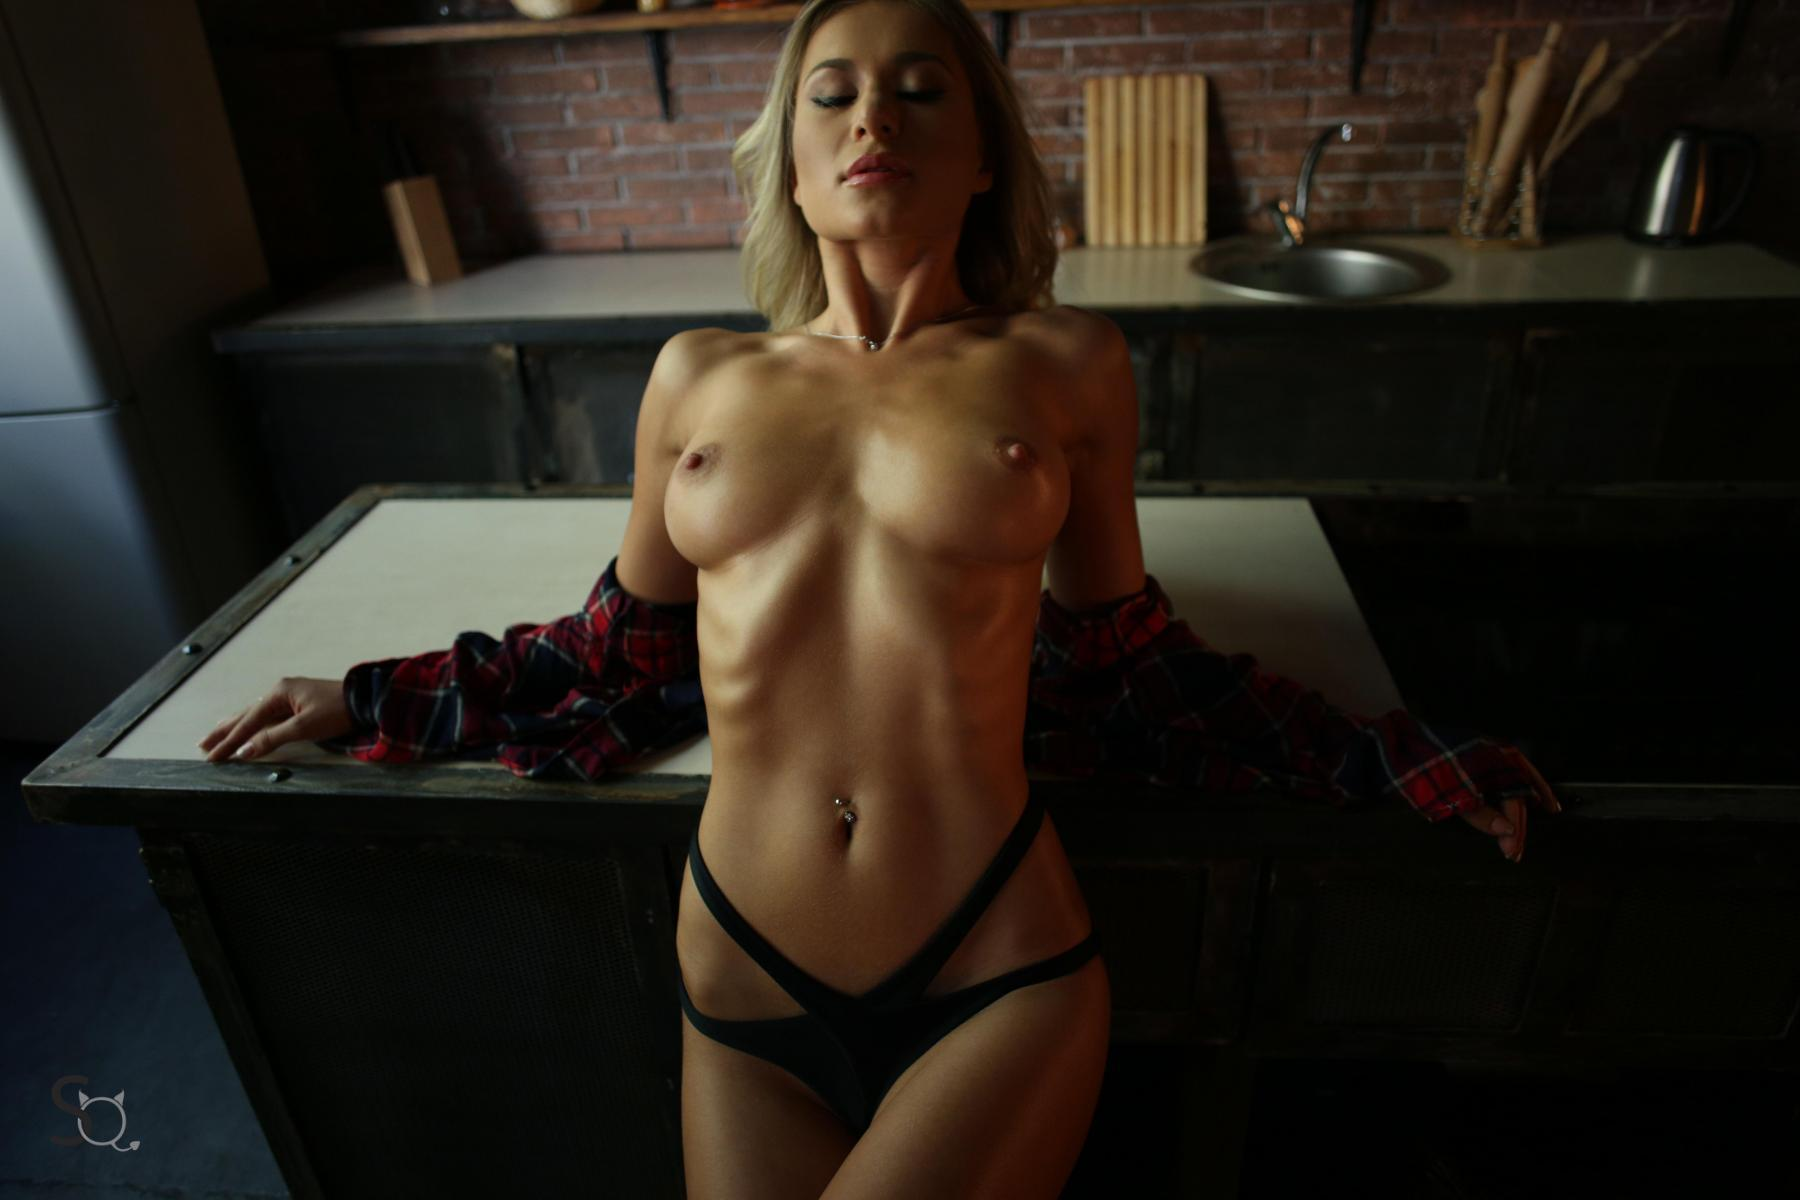 Hot busty pictures